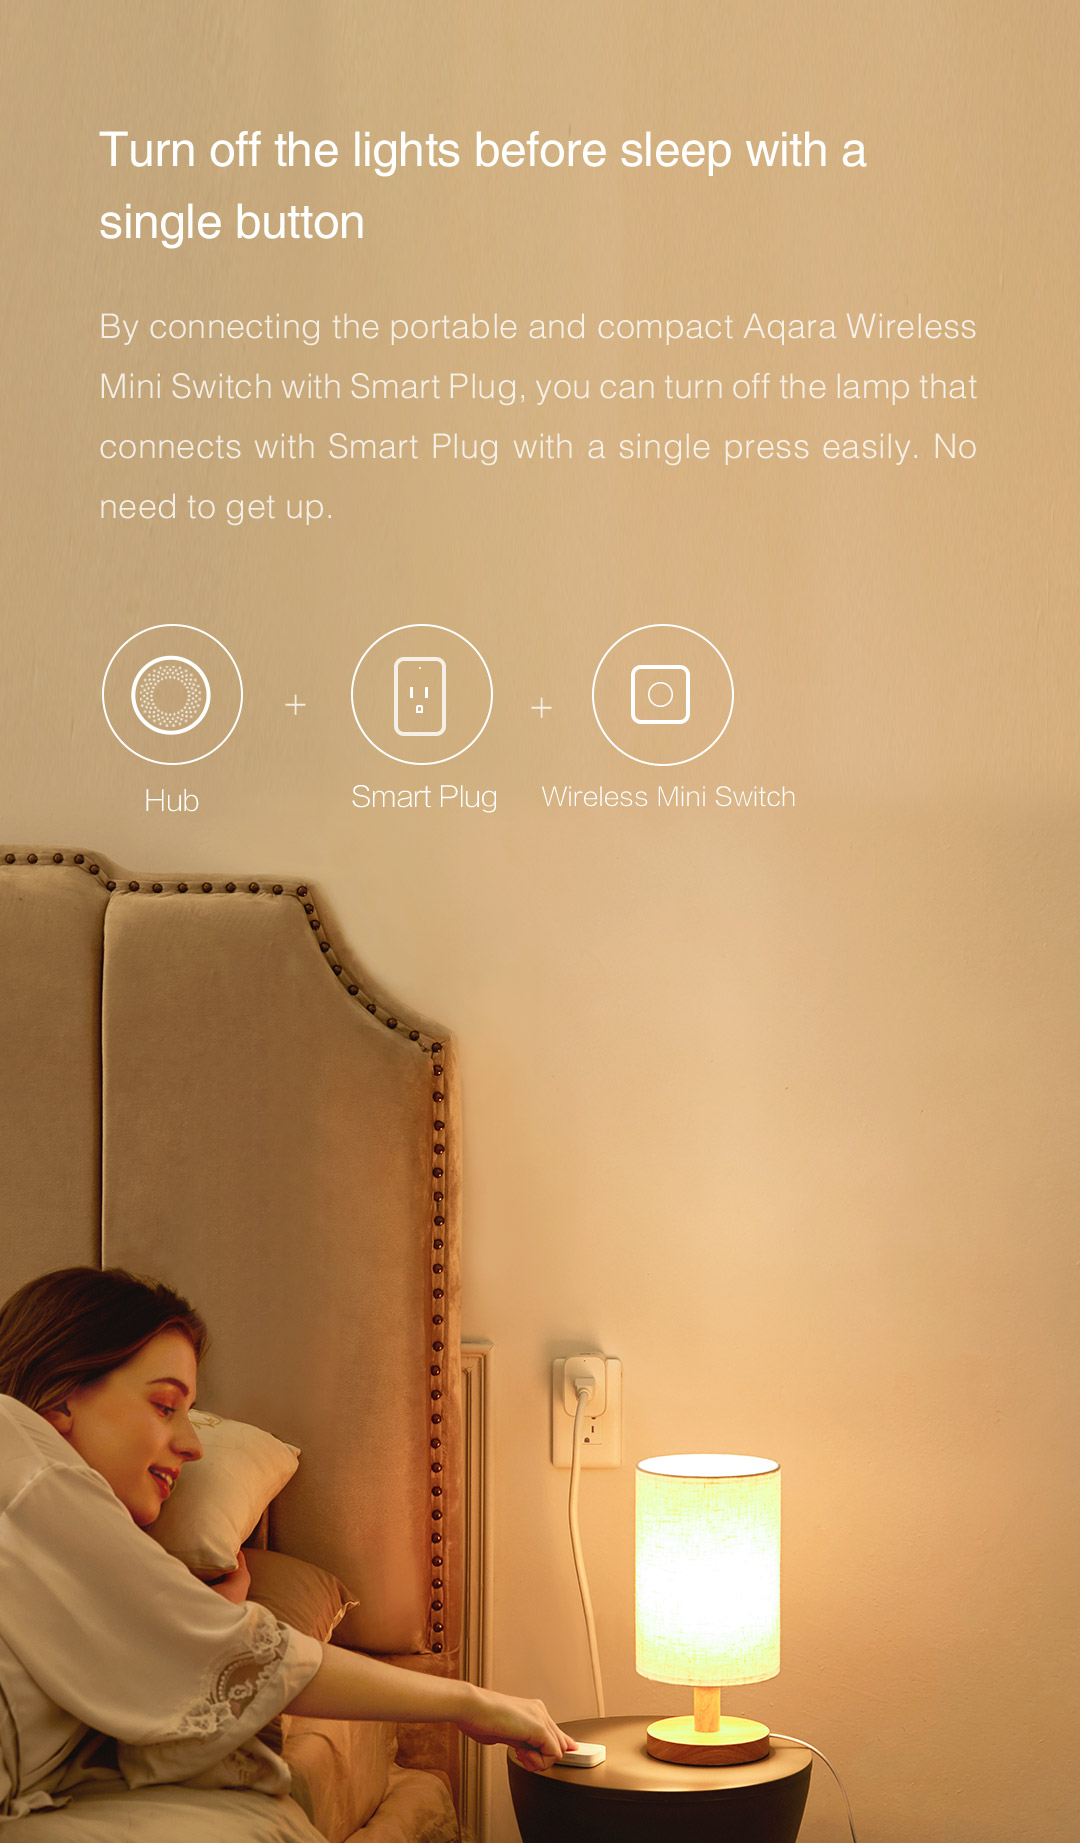 Hub + Smart Plug + Wireless Switch: Turn off the lights with a single button